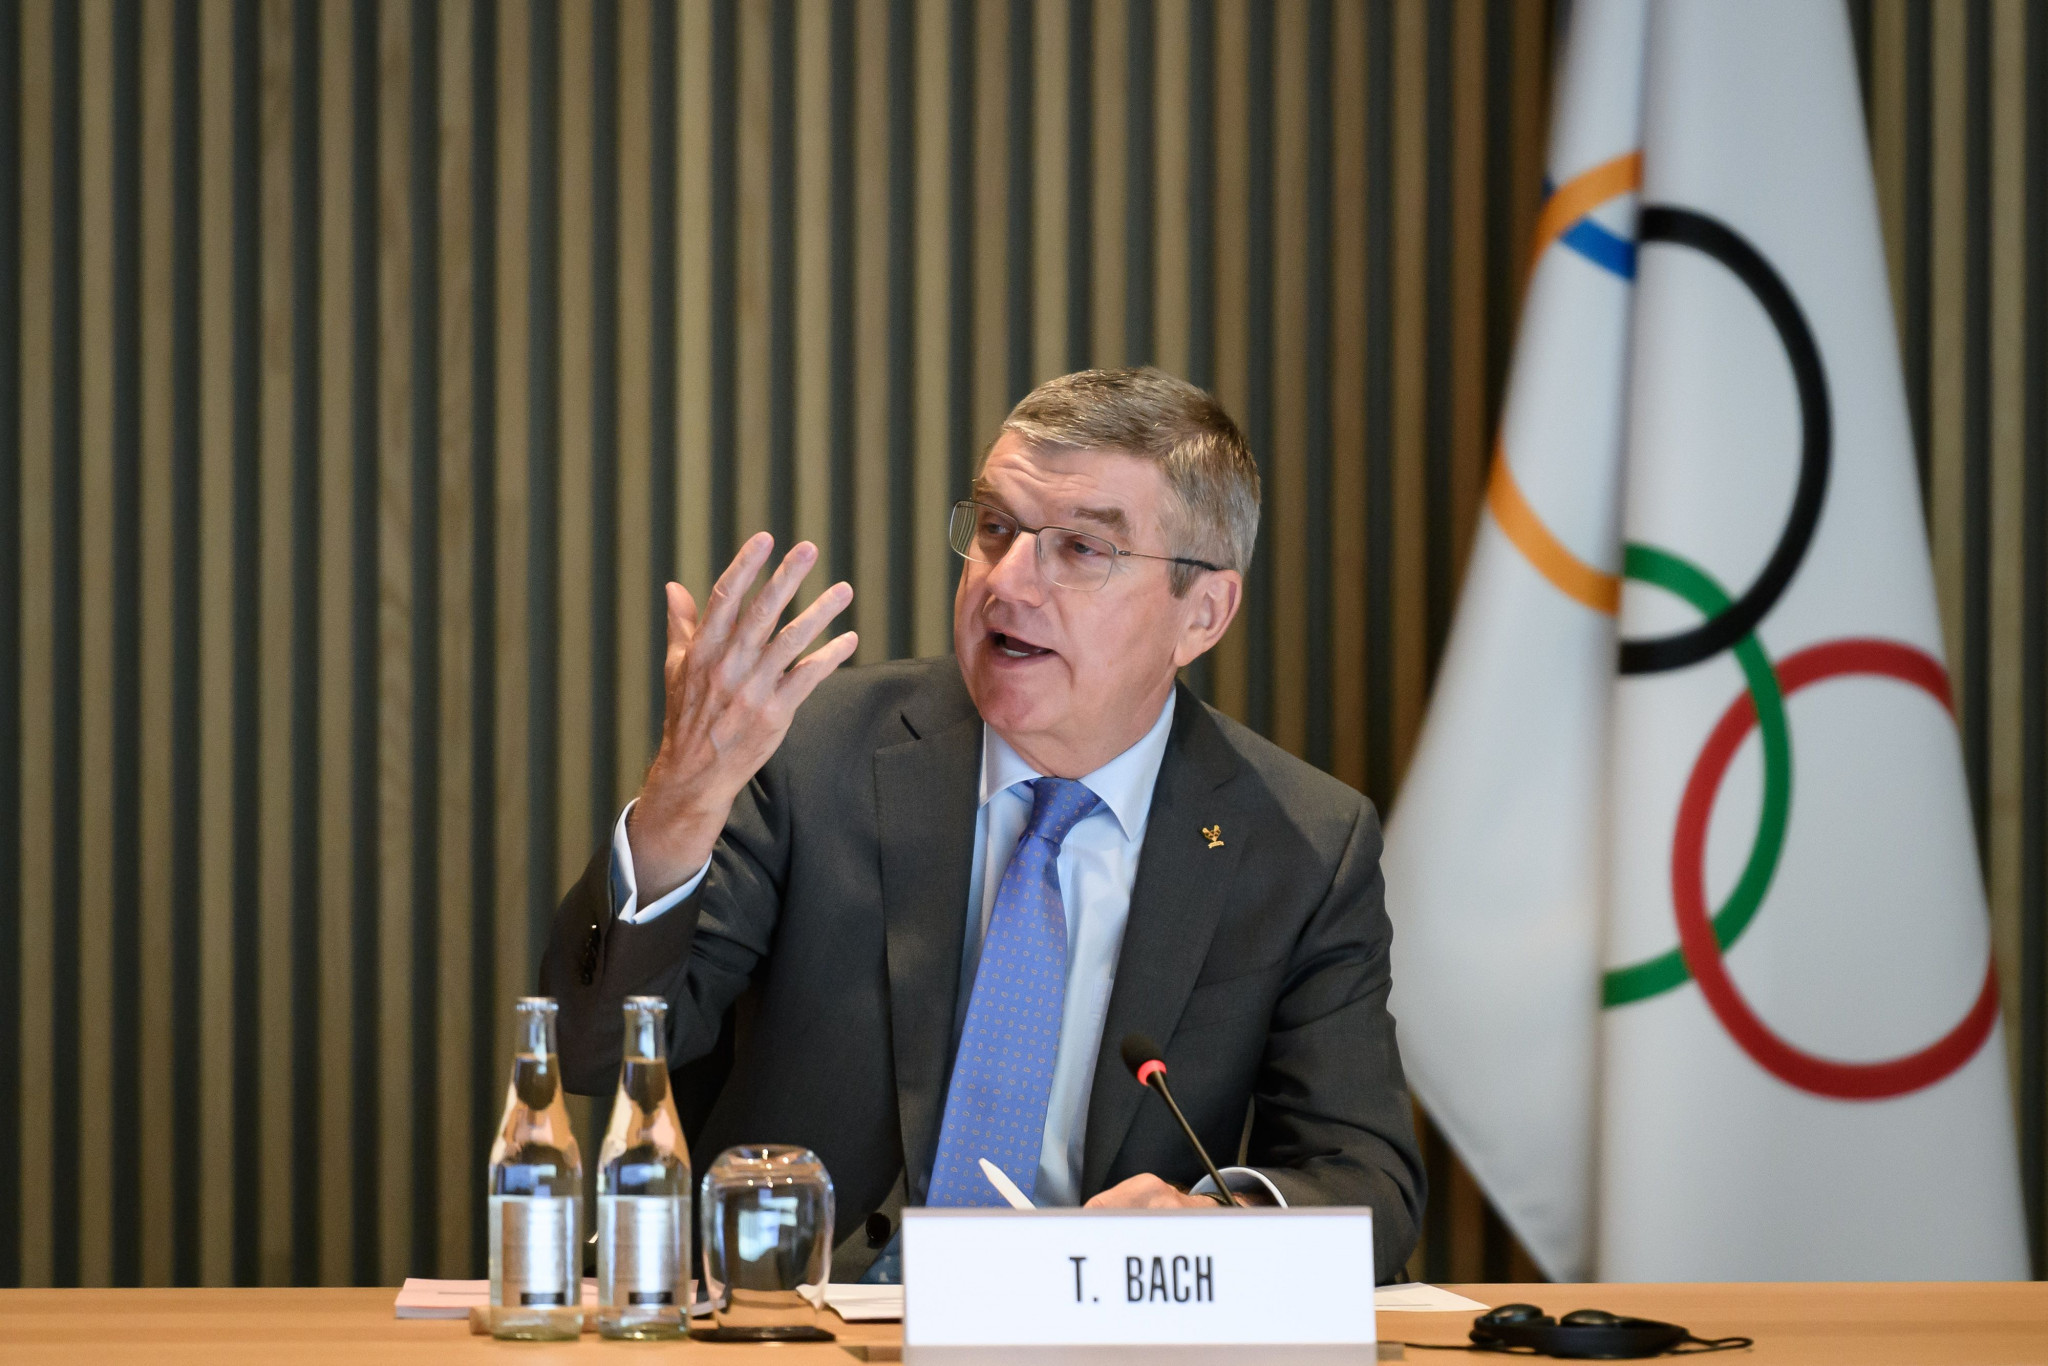 IOC President Thomas Bach welcomed Russia to Lausanne 2020 ©Getty Images